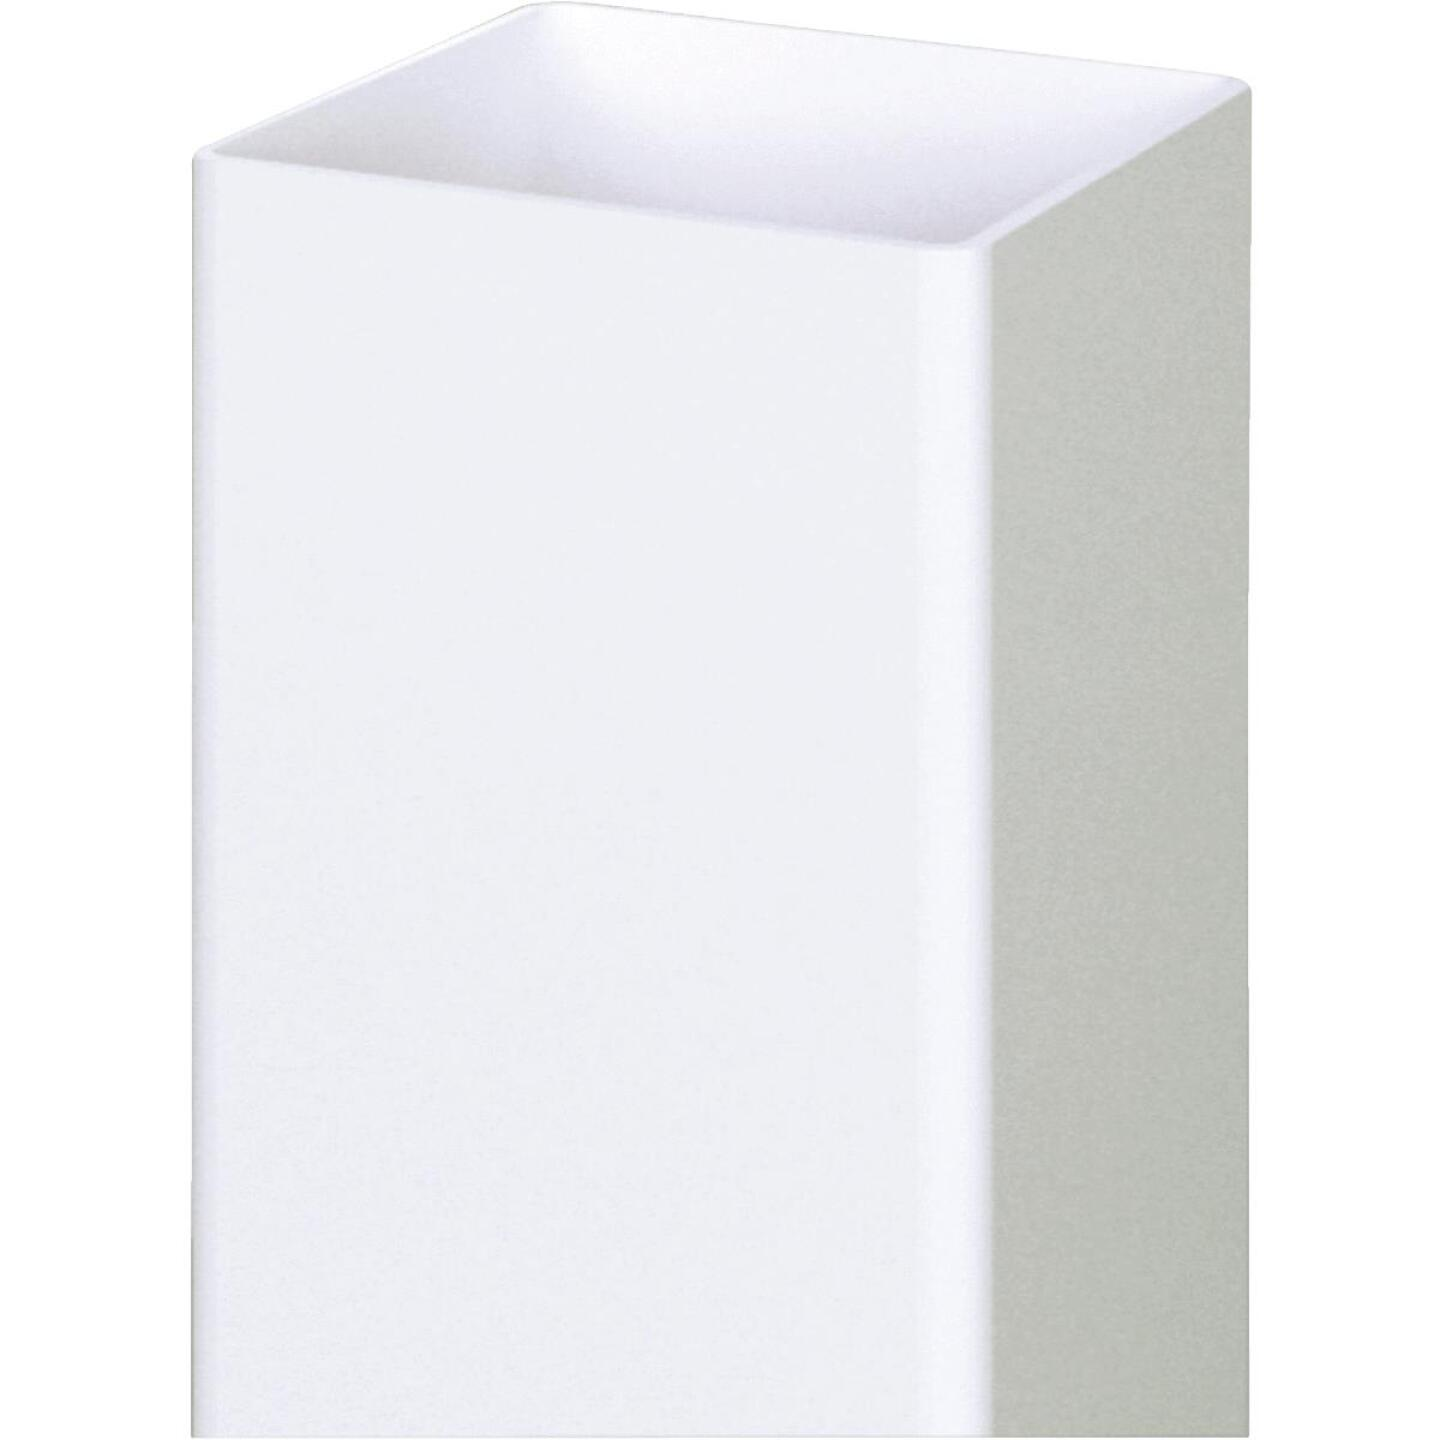 Outdoor Essentials 5 In. x 5 In. x 96 In. White Blank Vinyl Post Image 2